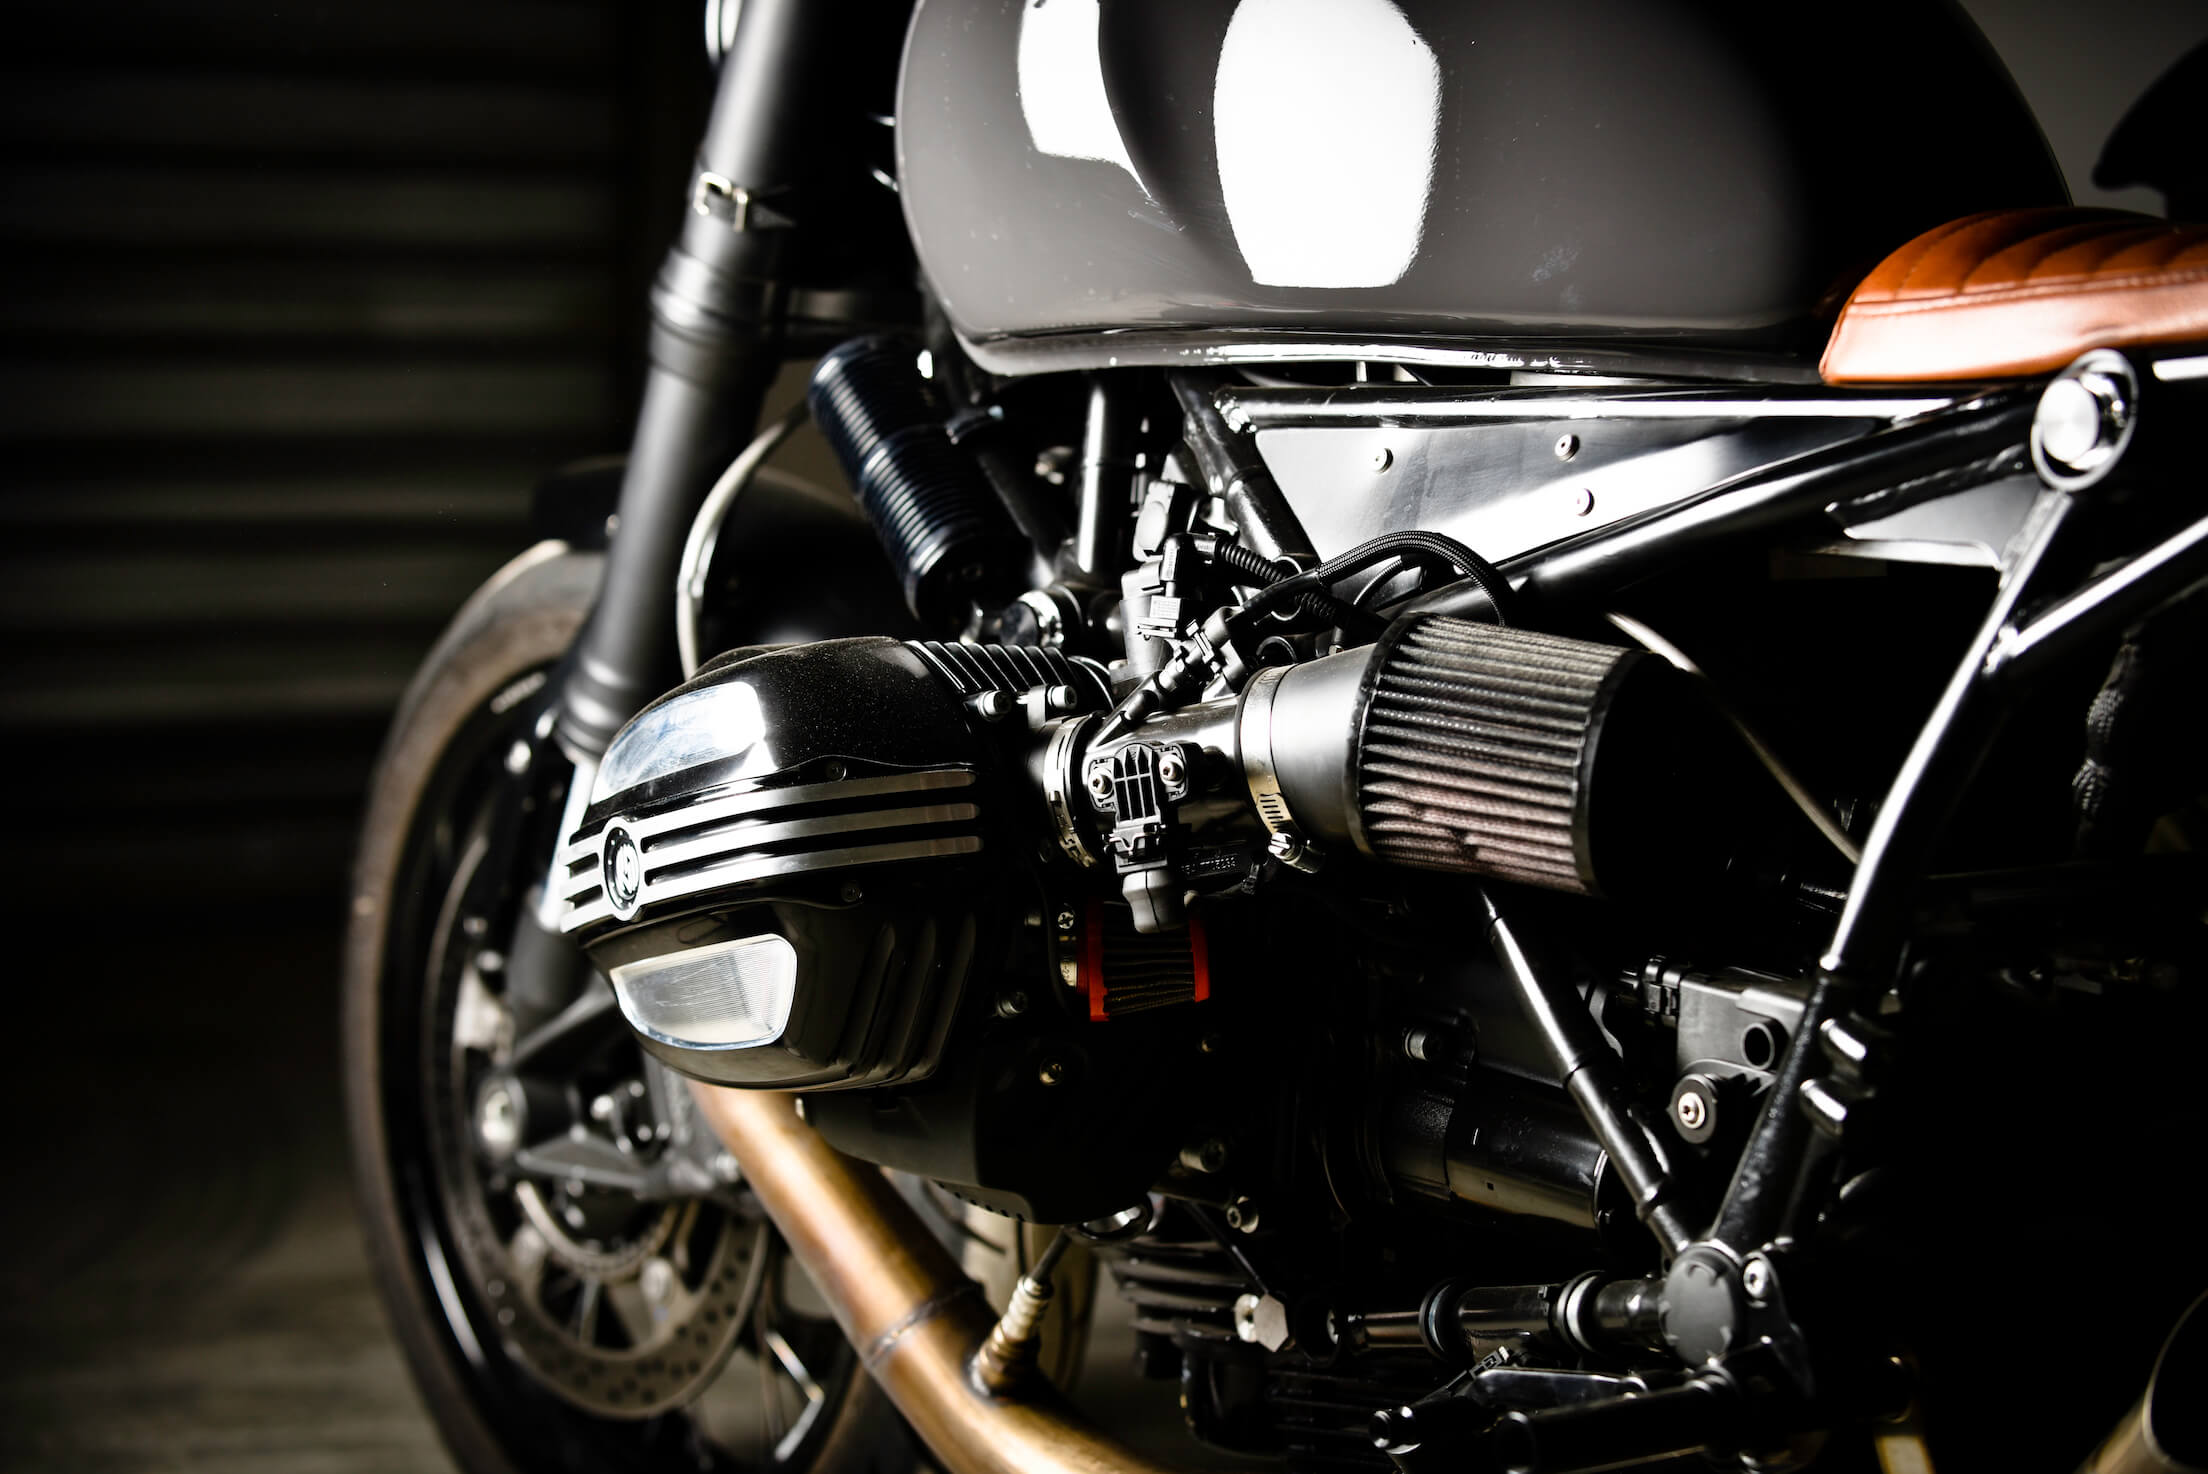 la pr pa sur base de bmw ninet par bf motorcycles 4h10. Black Bedroom Furniture Sets. Home Design Ideas